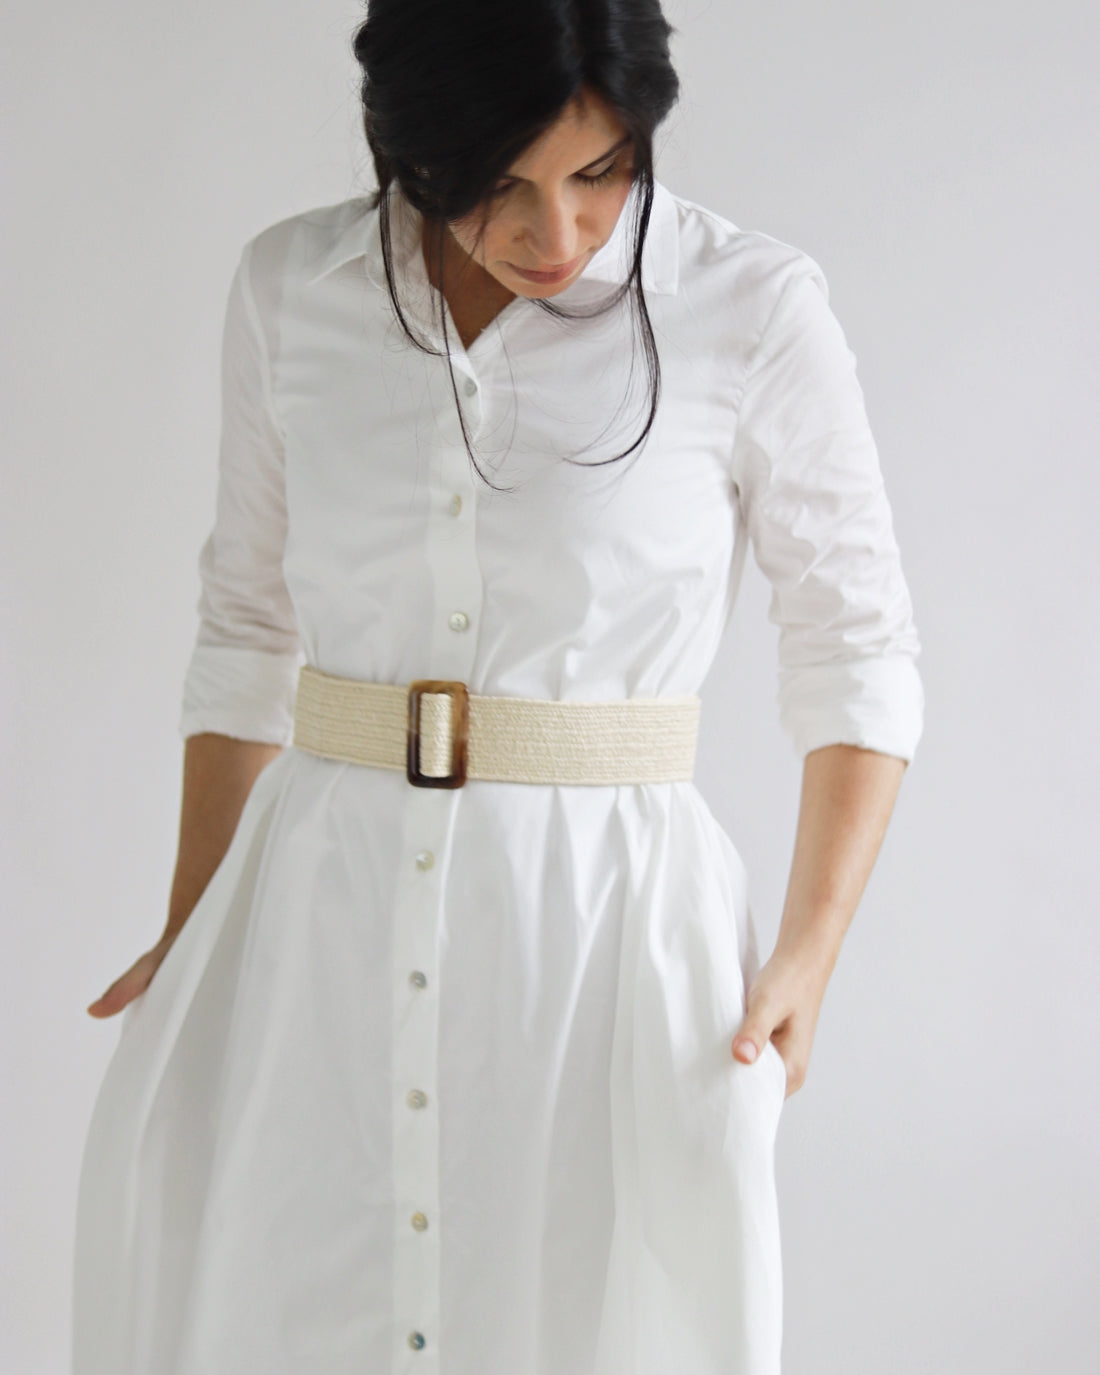 Natural Belt - Sarah Feldman Cape Town